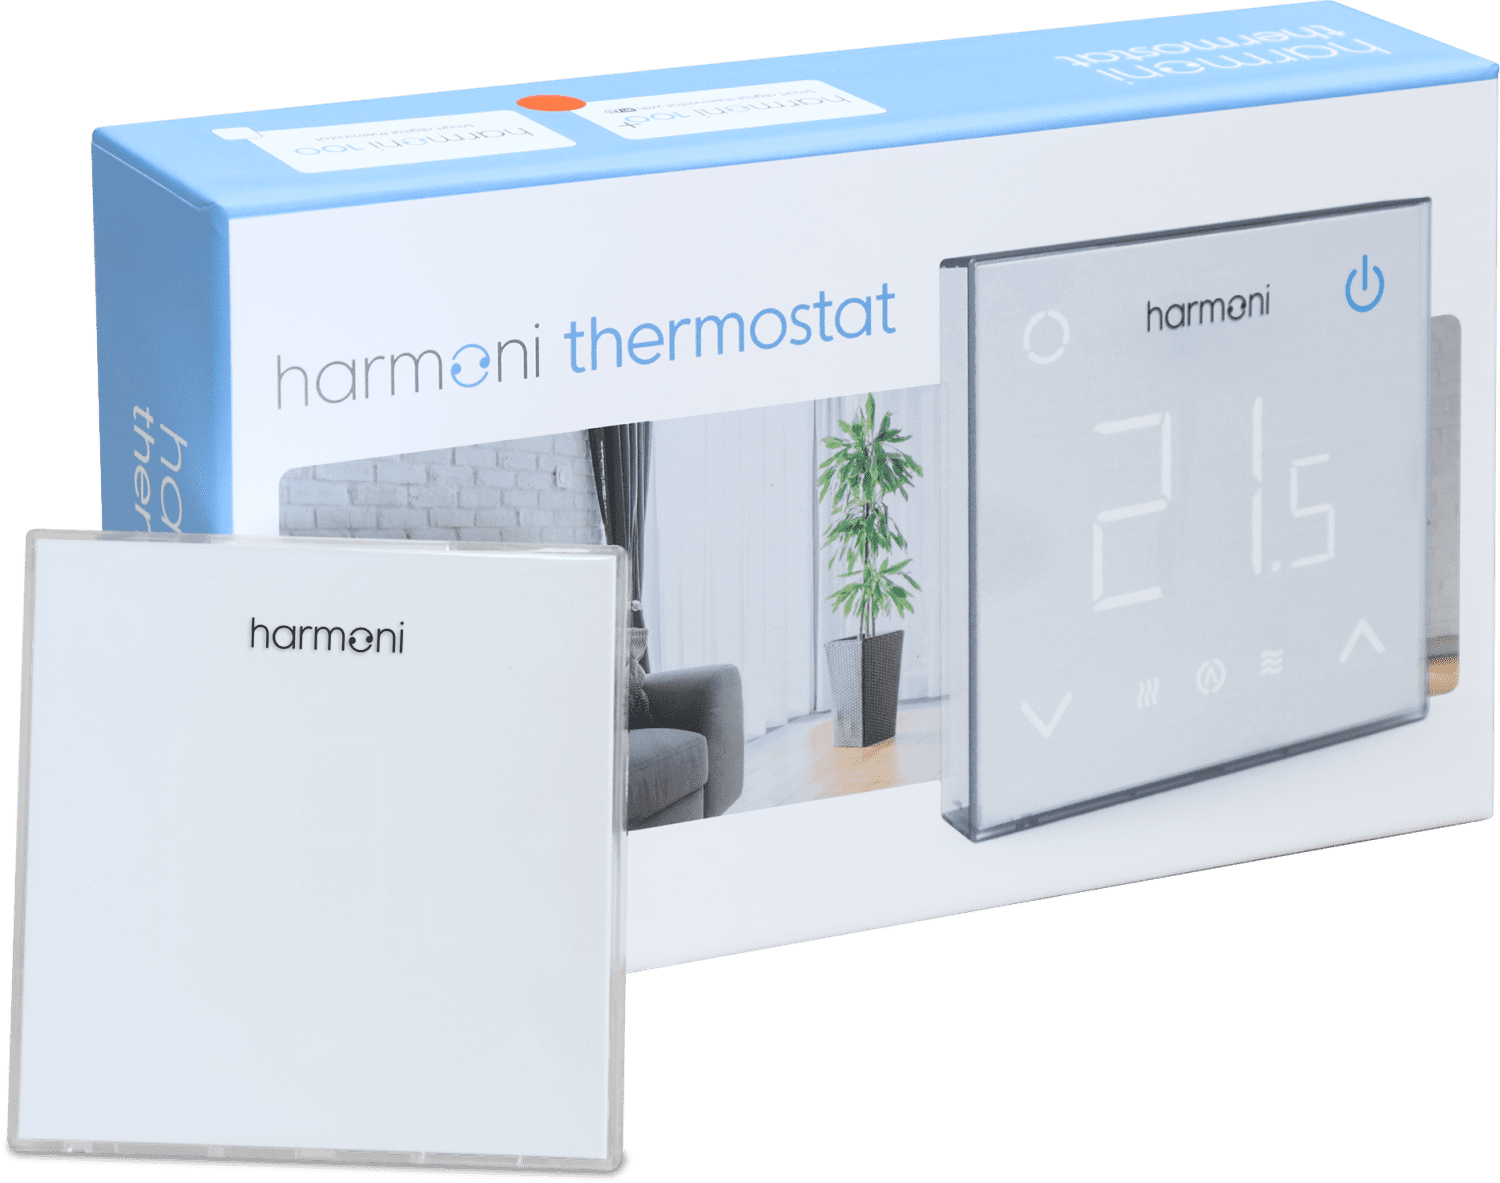 Harmoni 100+ Wi-Fi enabled thermostat